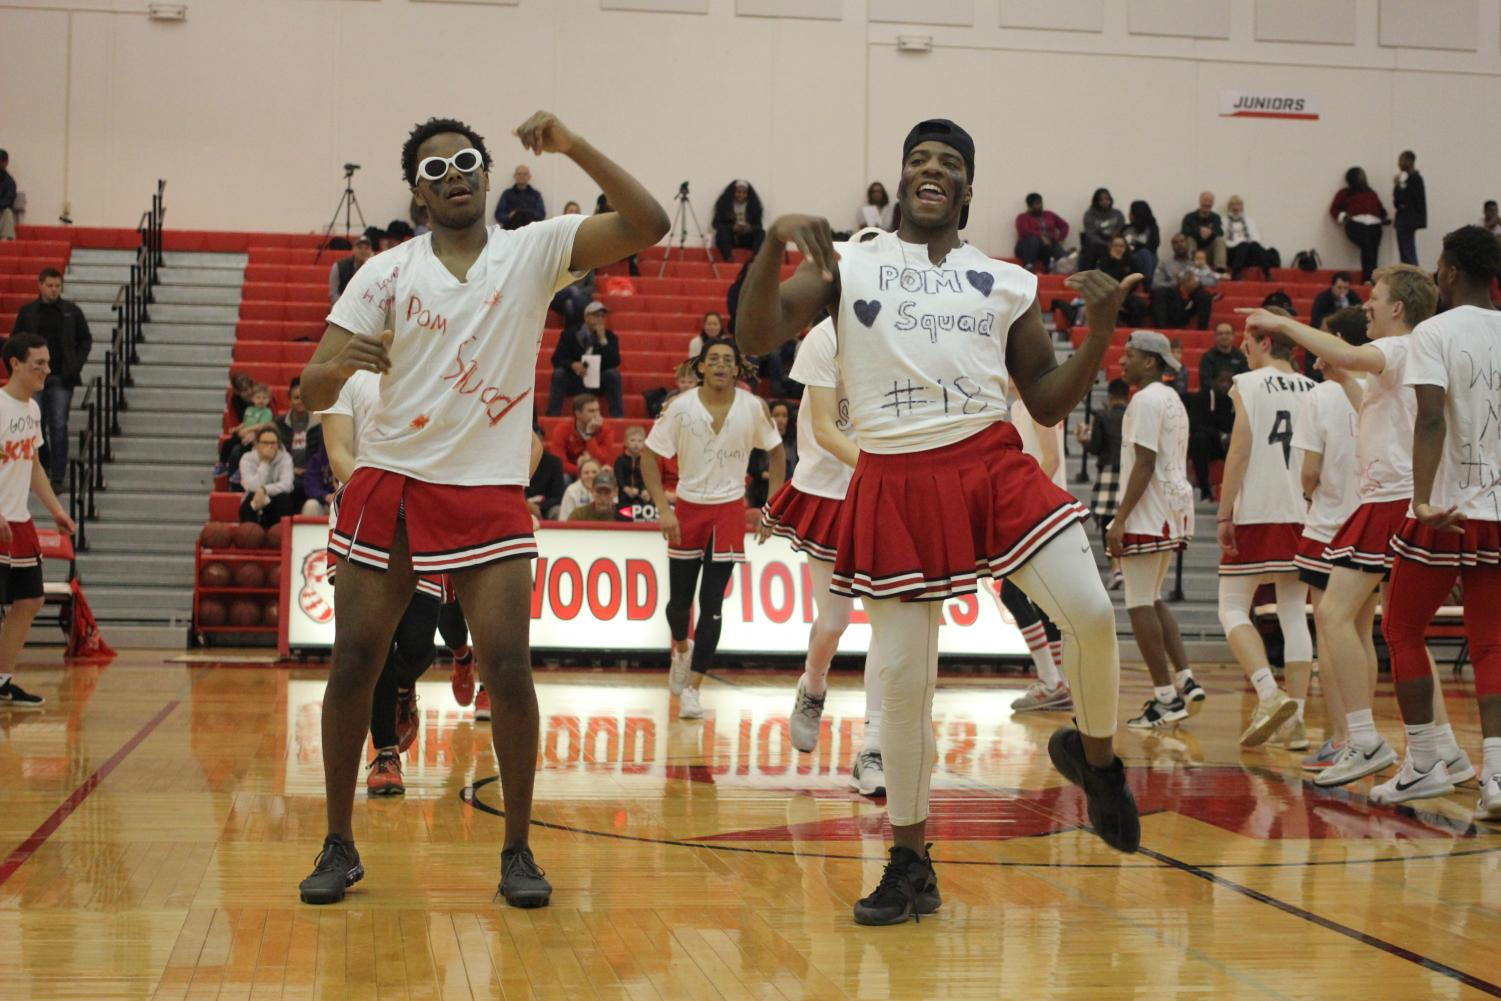 TJ+Phipps+and+Tyriek+Lewis%2C+seniors%2C+perform+their+dance+routine+with+the+Male+Poms.+